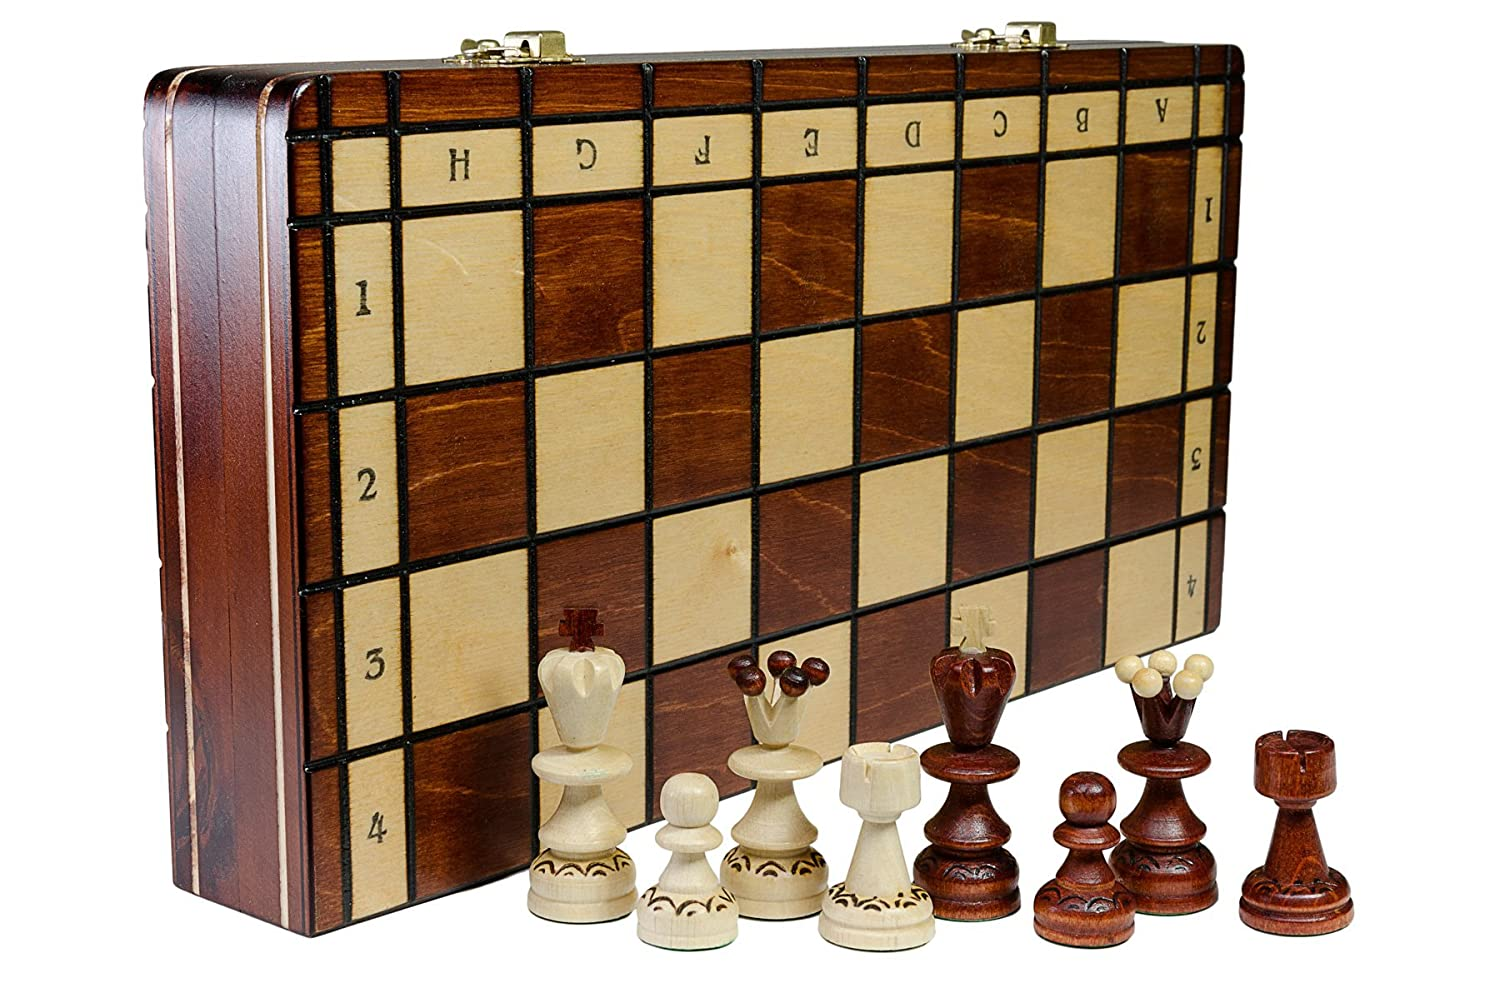 35cm PEARL DELUXE 14in Handcrafted Wooden Chess Set